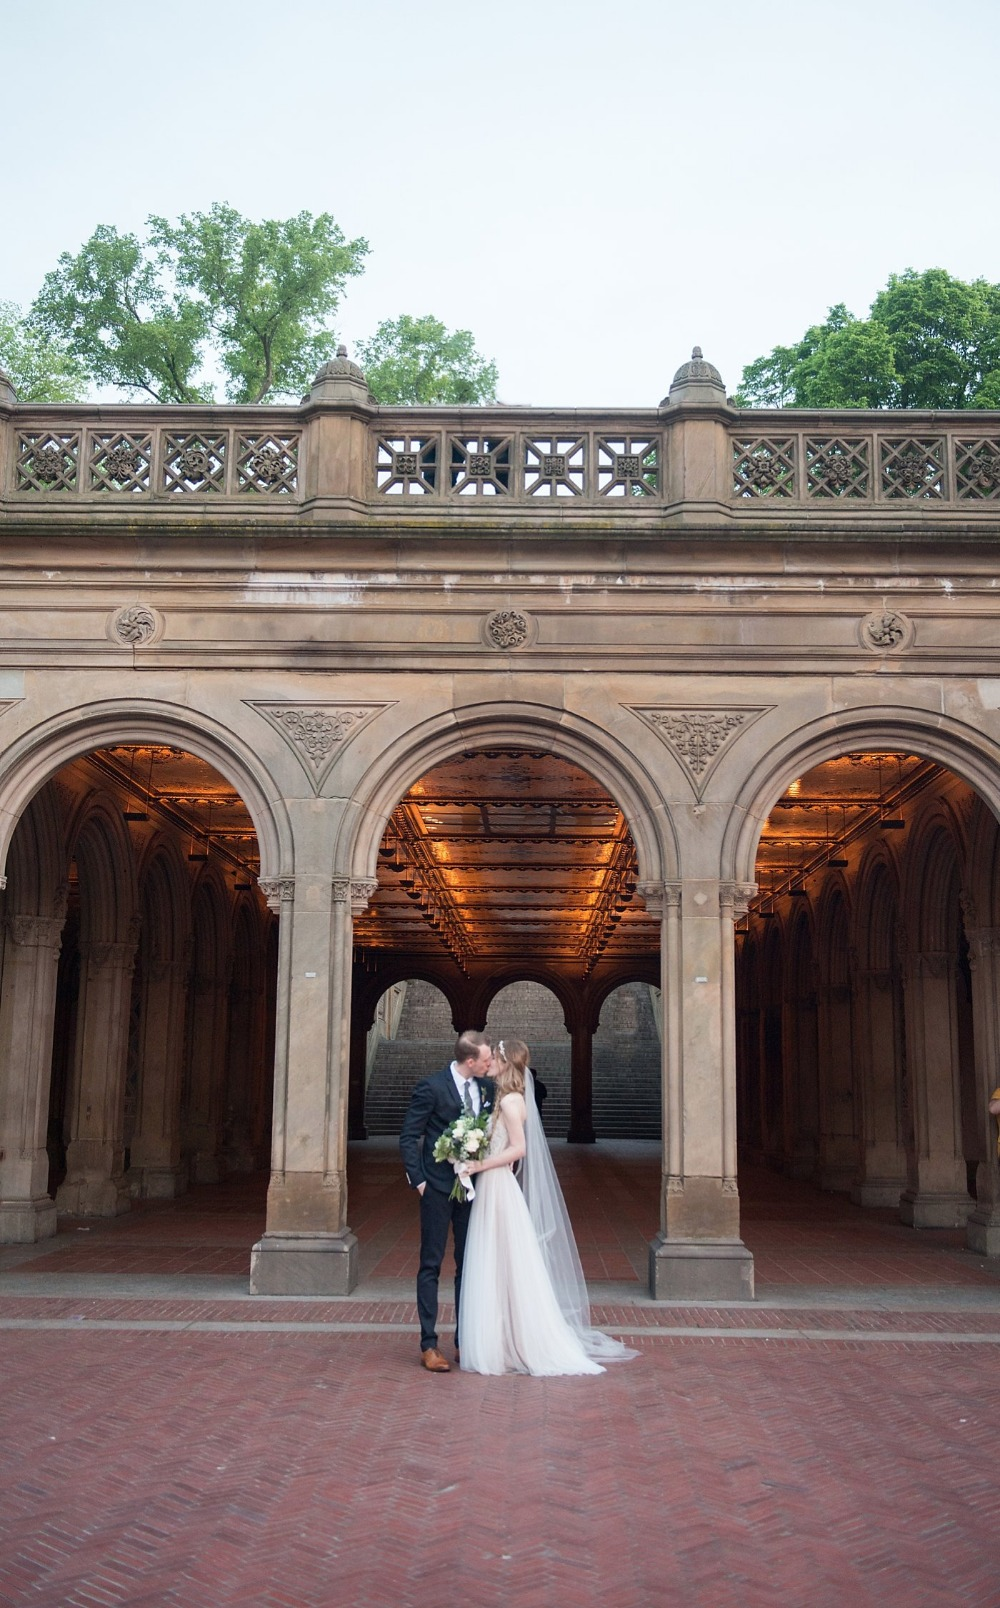 Beautiful wedding shoot in New York